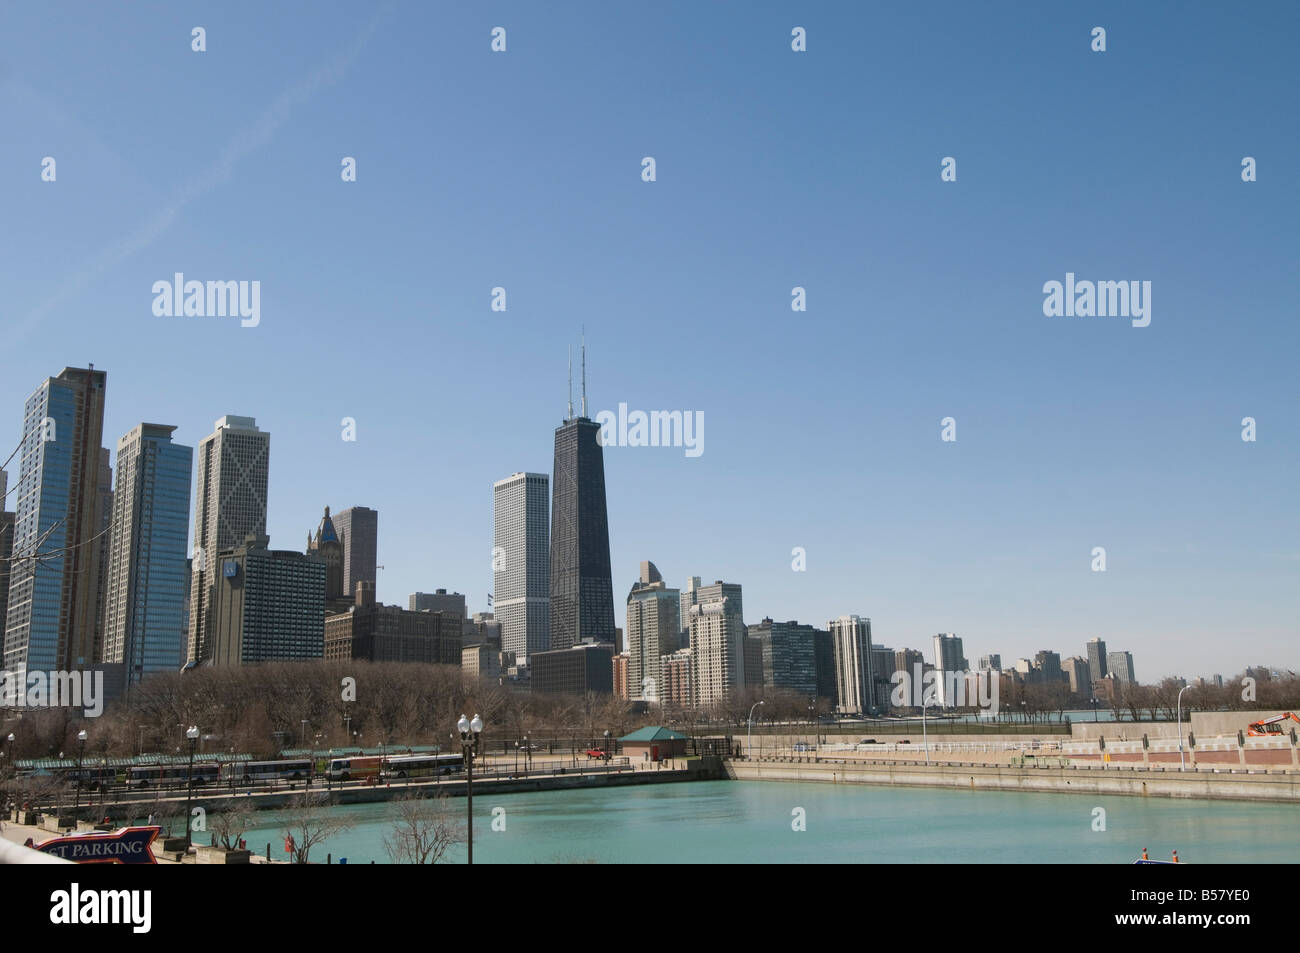 Chicago, Illinois, United States of America, North America - Stock Image